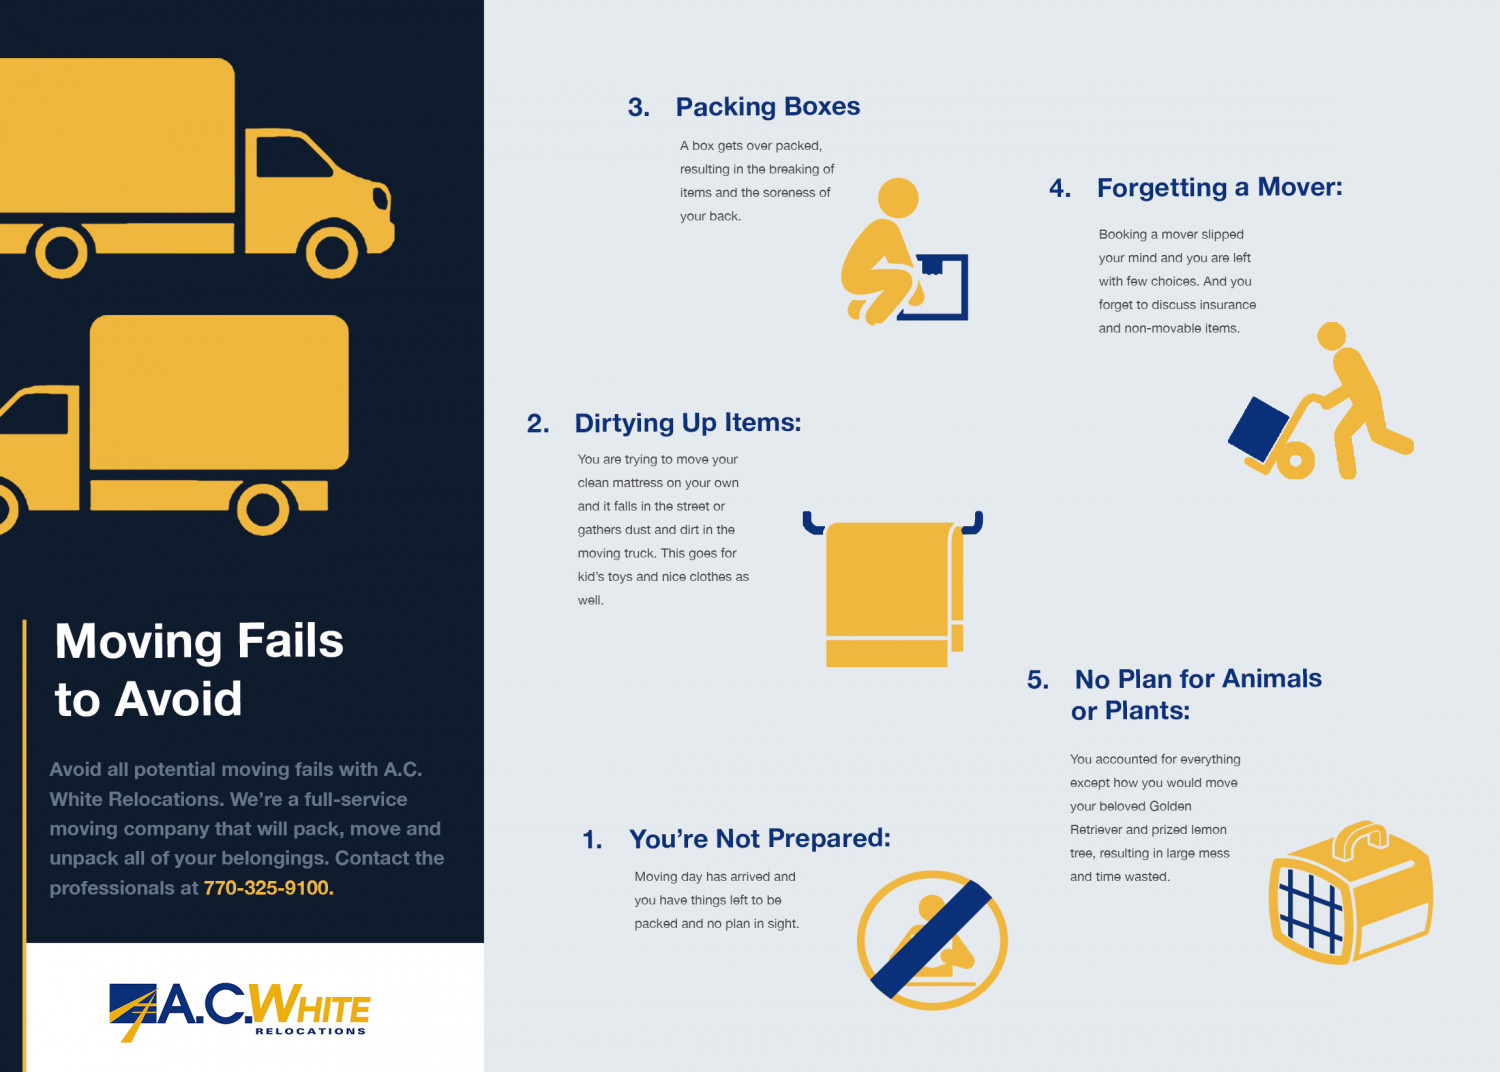 Moving Fails to Avoid Infographic